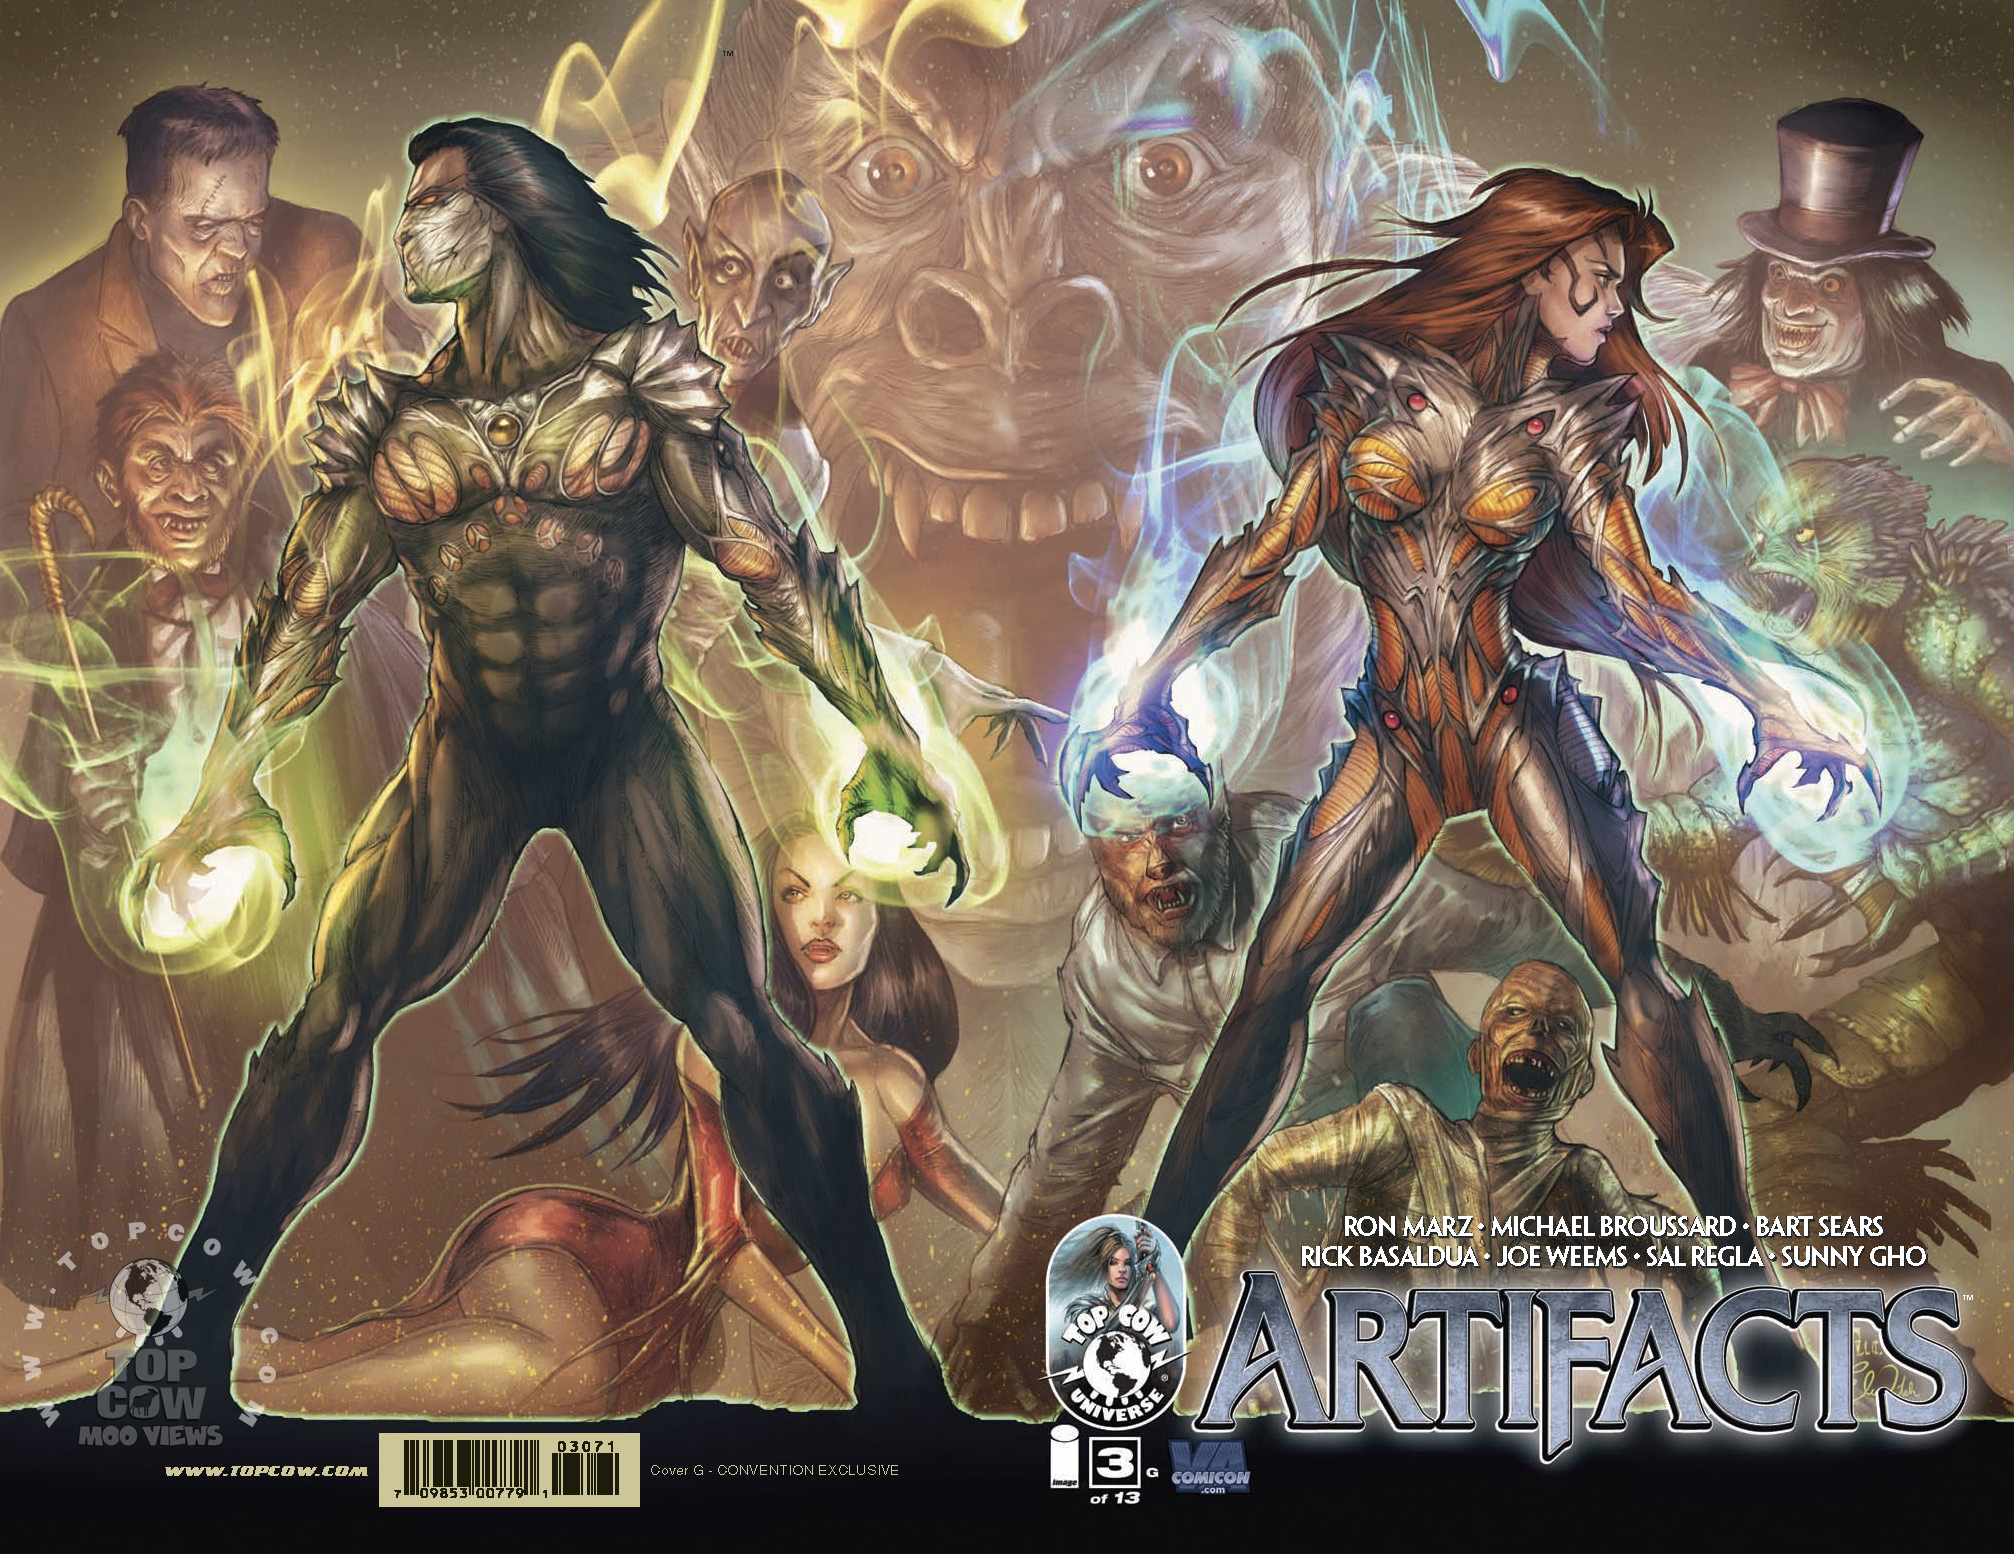 Artifacts #3 variant, by Tucci